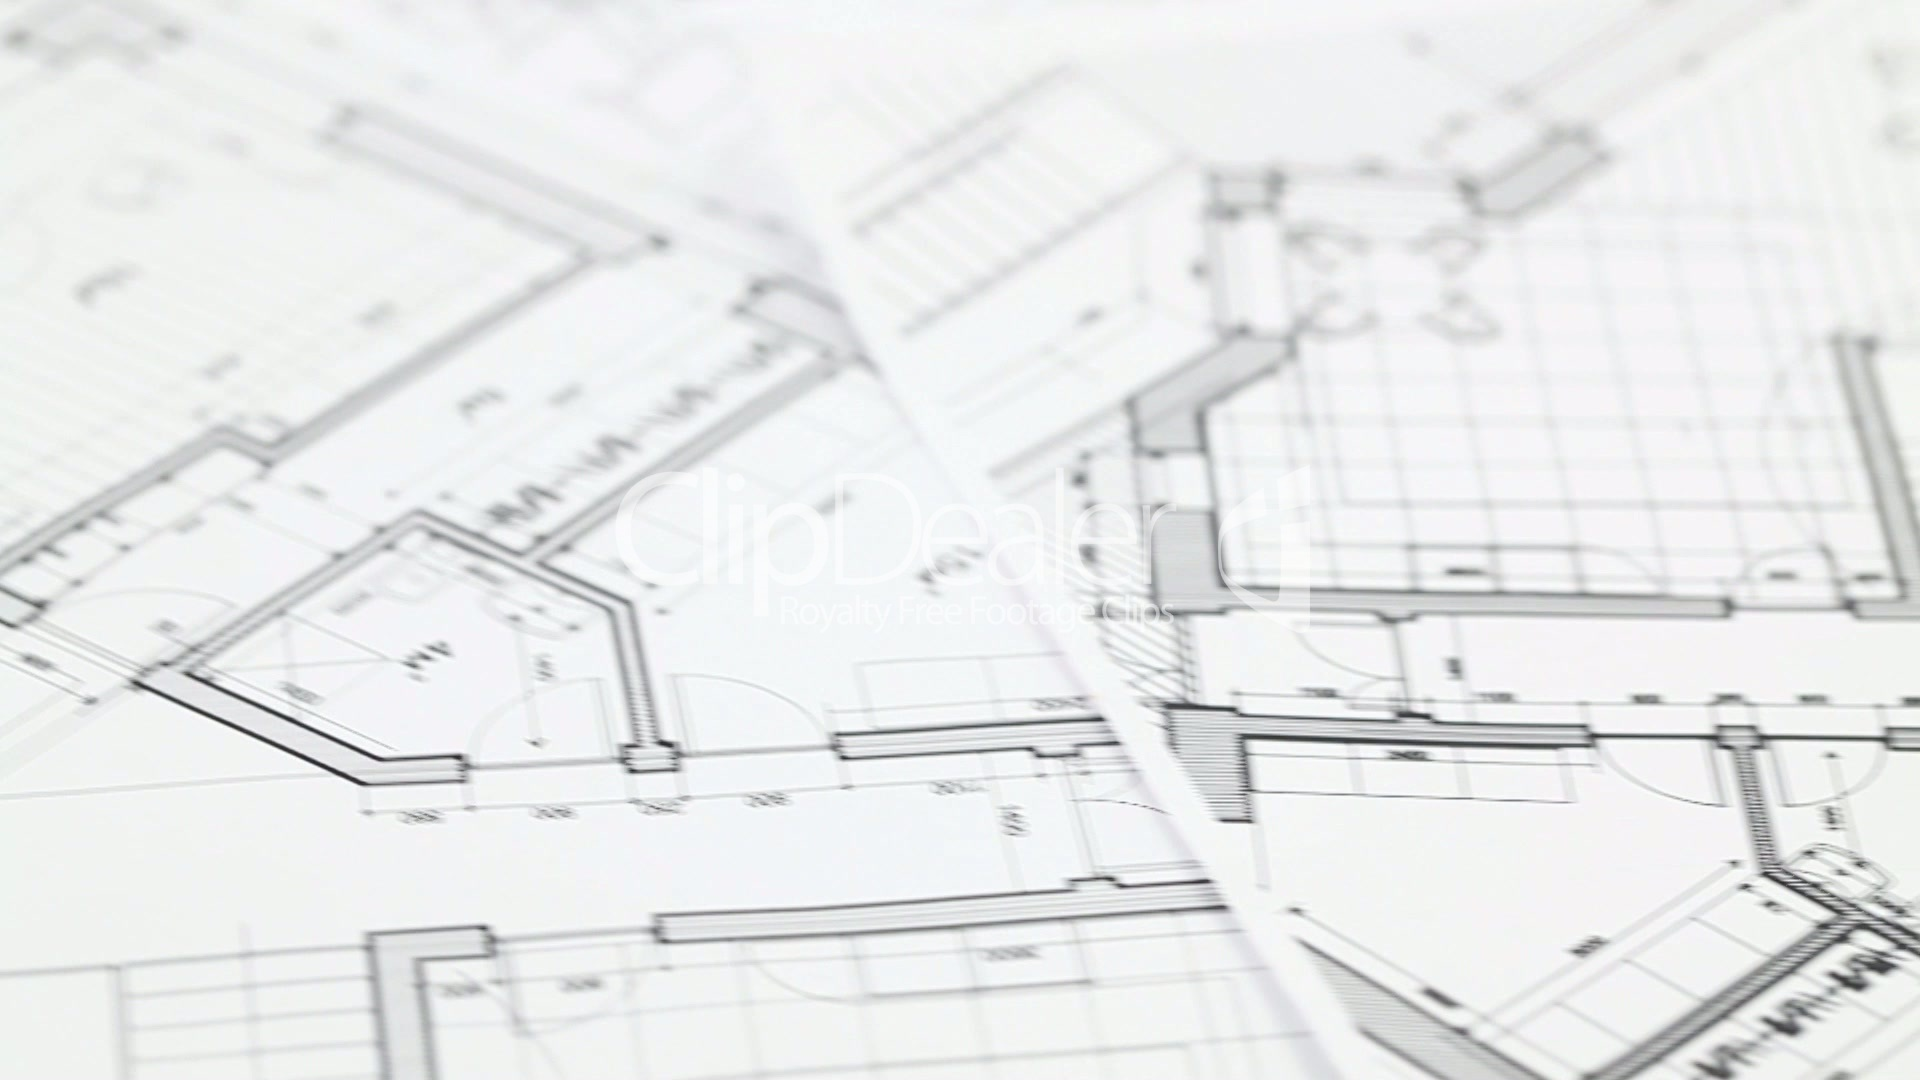 Architecture Drawing Wallpaper